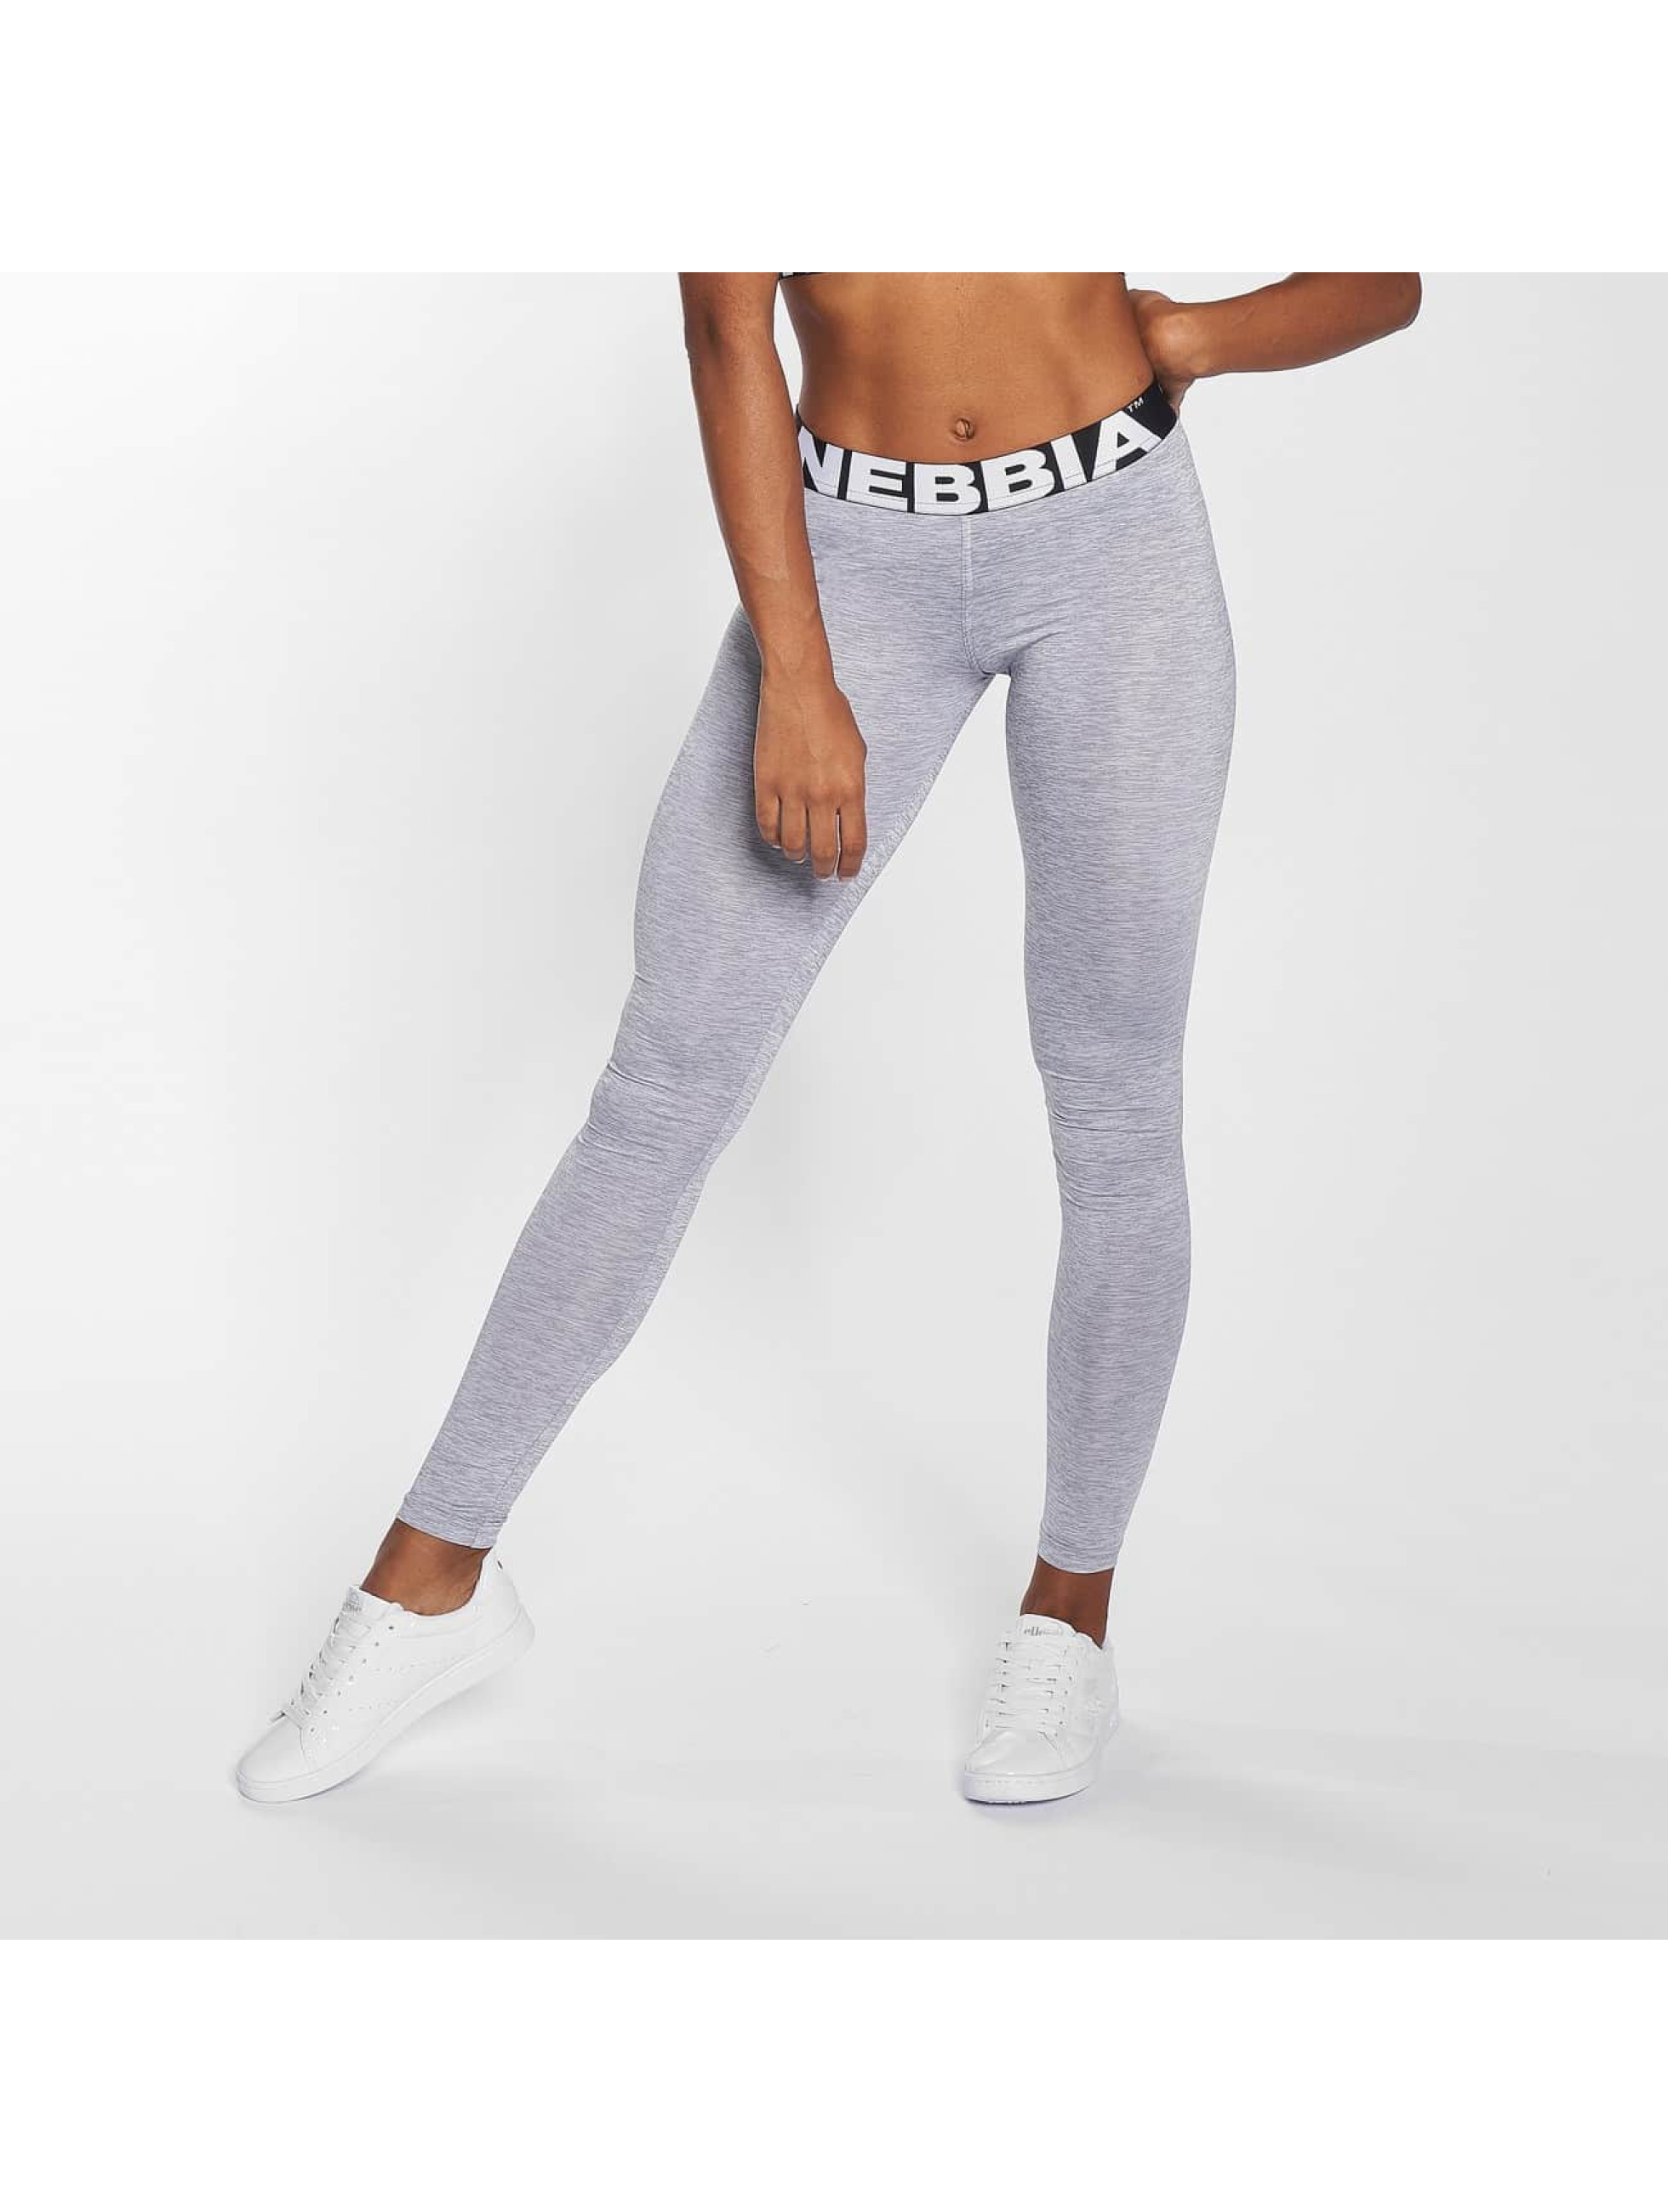 Nebbia Leggings/Treggings Basic szary